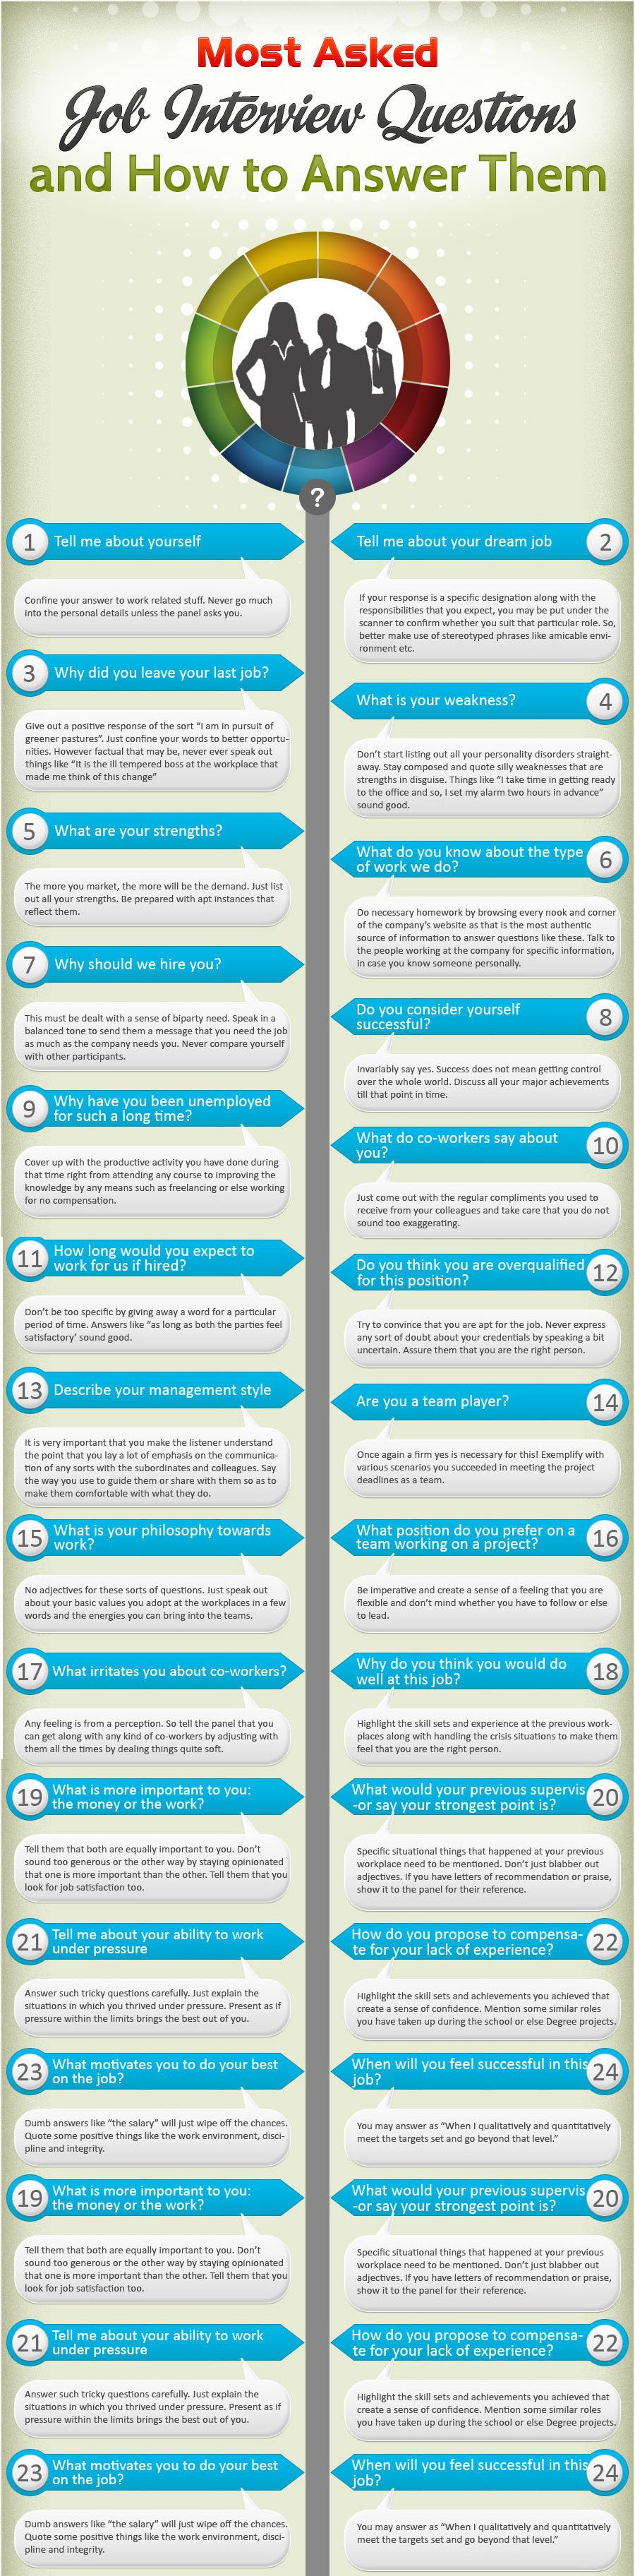 Funny Pictures About How To Answer The Most Asked Job Interview Questions.  Oh, And Cool Pics About How To Answer The Most Asked Job Interview Questions .